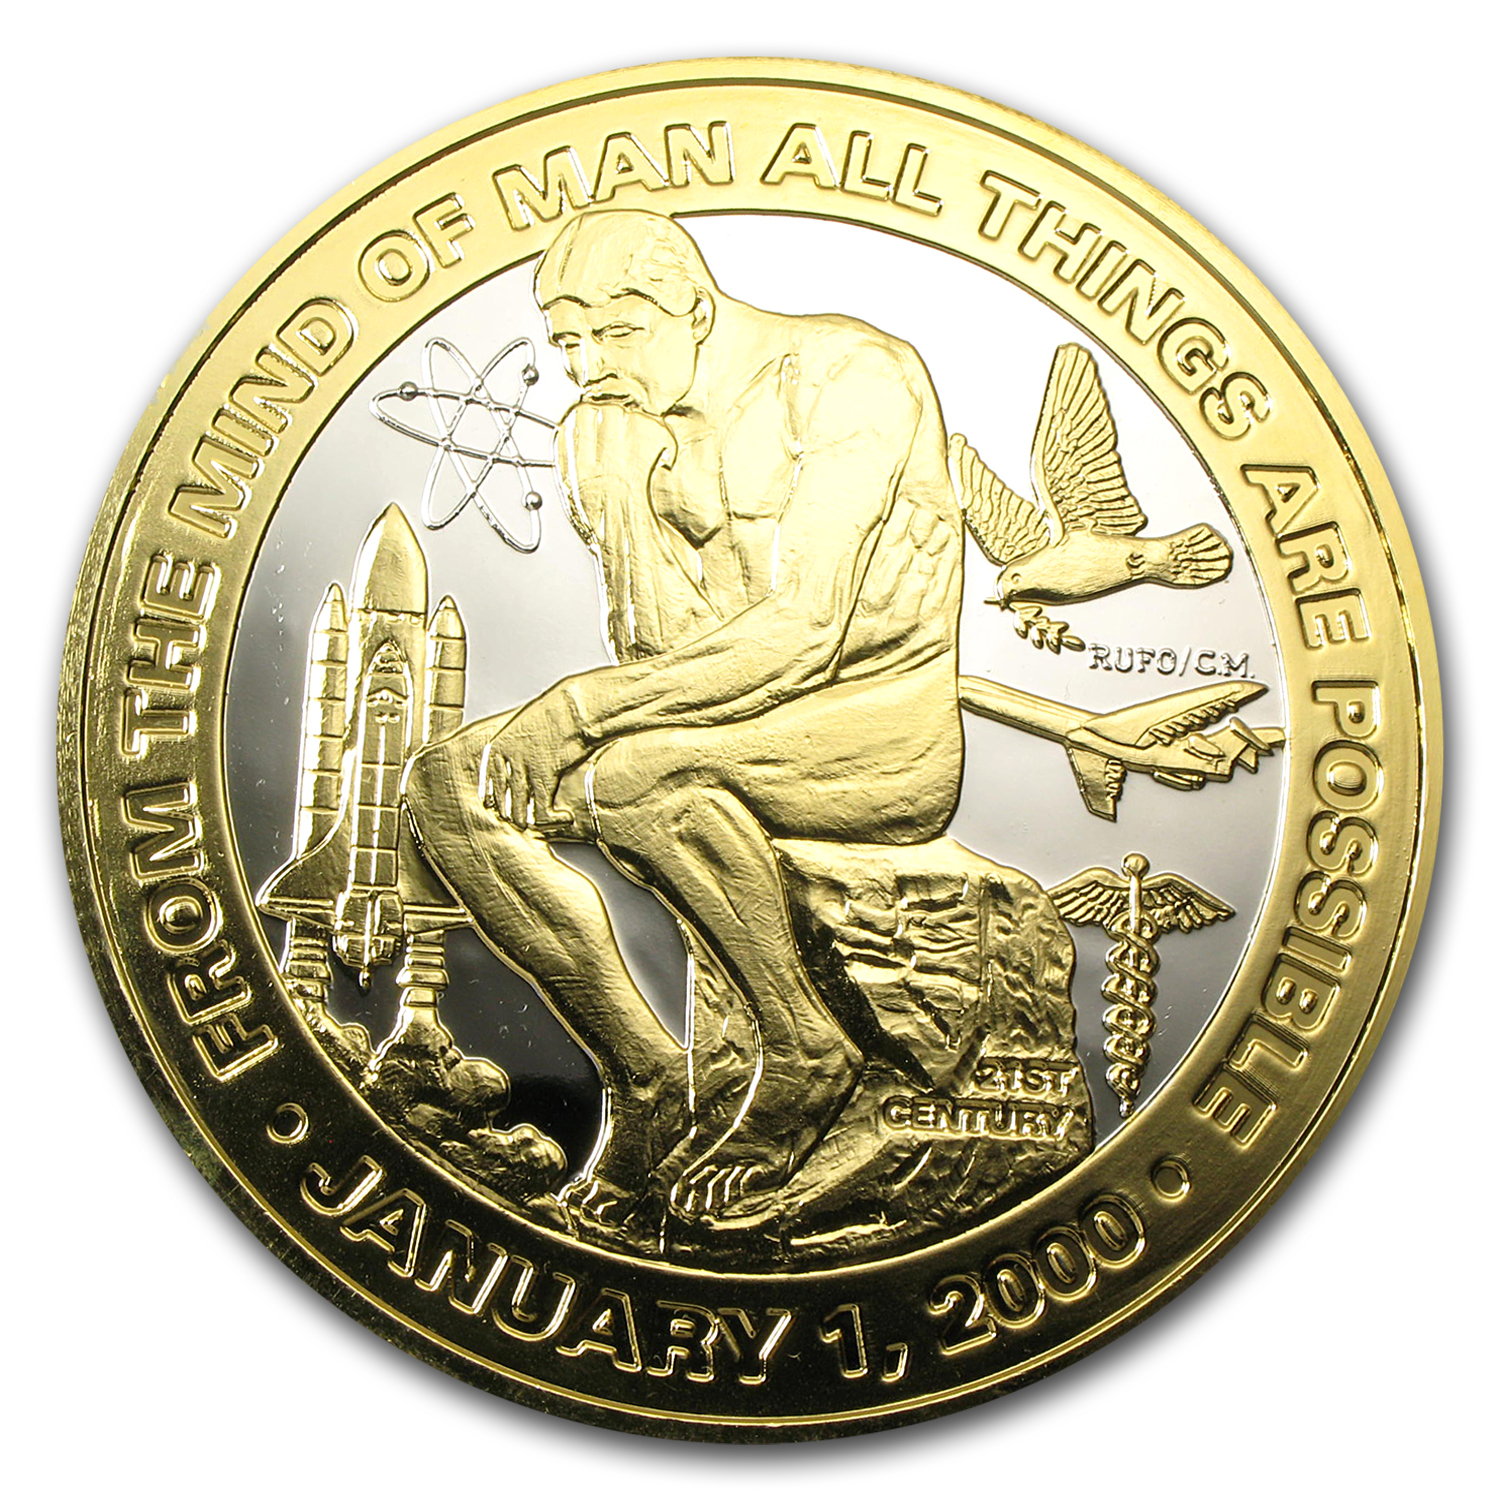 6 oz Silver Round - Millenium Thinker (Gilded/Plated)